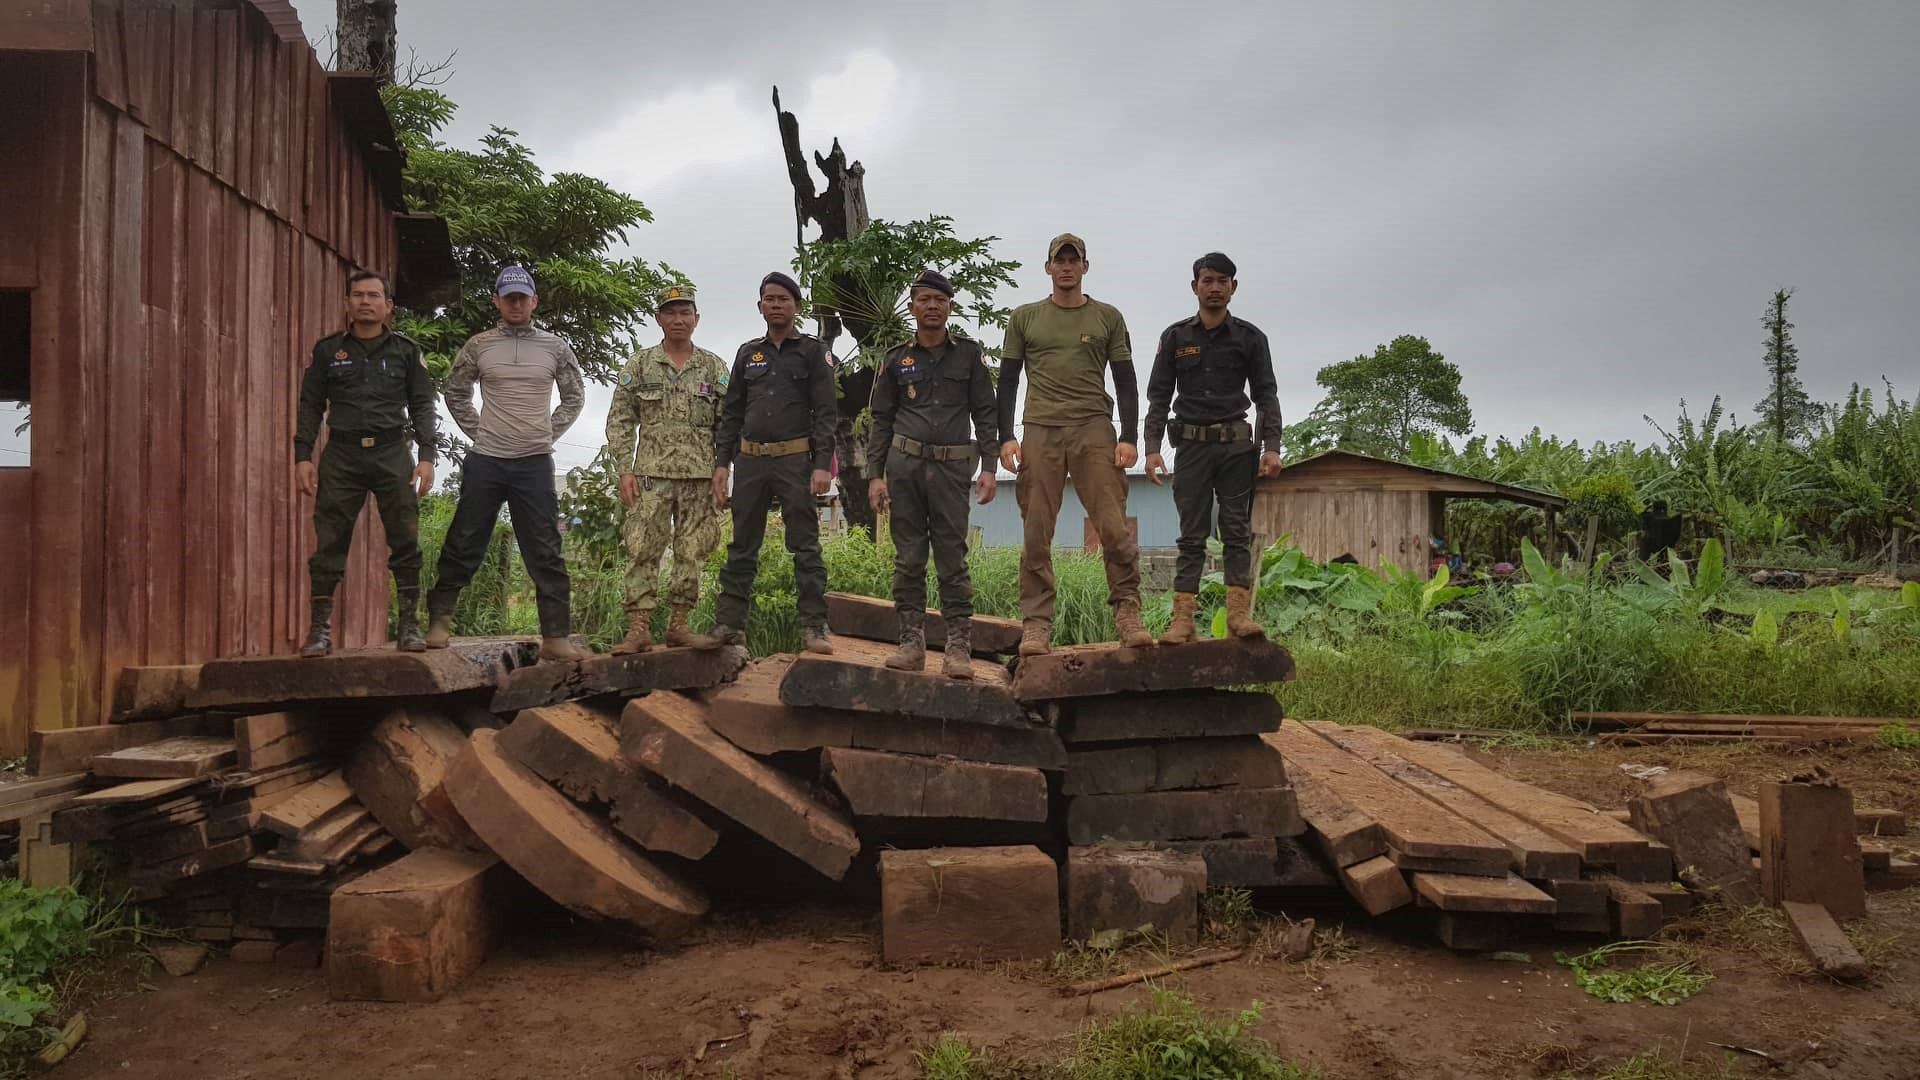 The 10 tonnes of Luxury Timber were seized during the raid